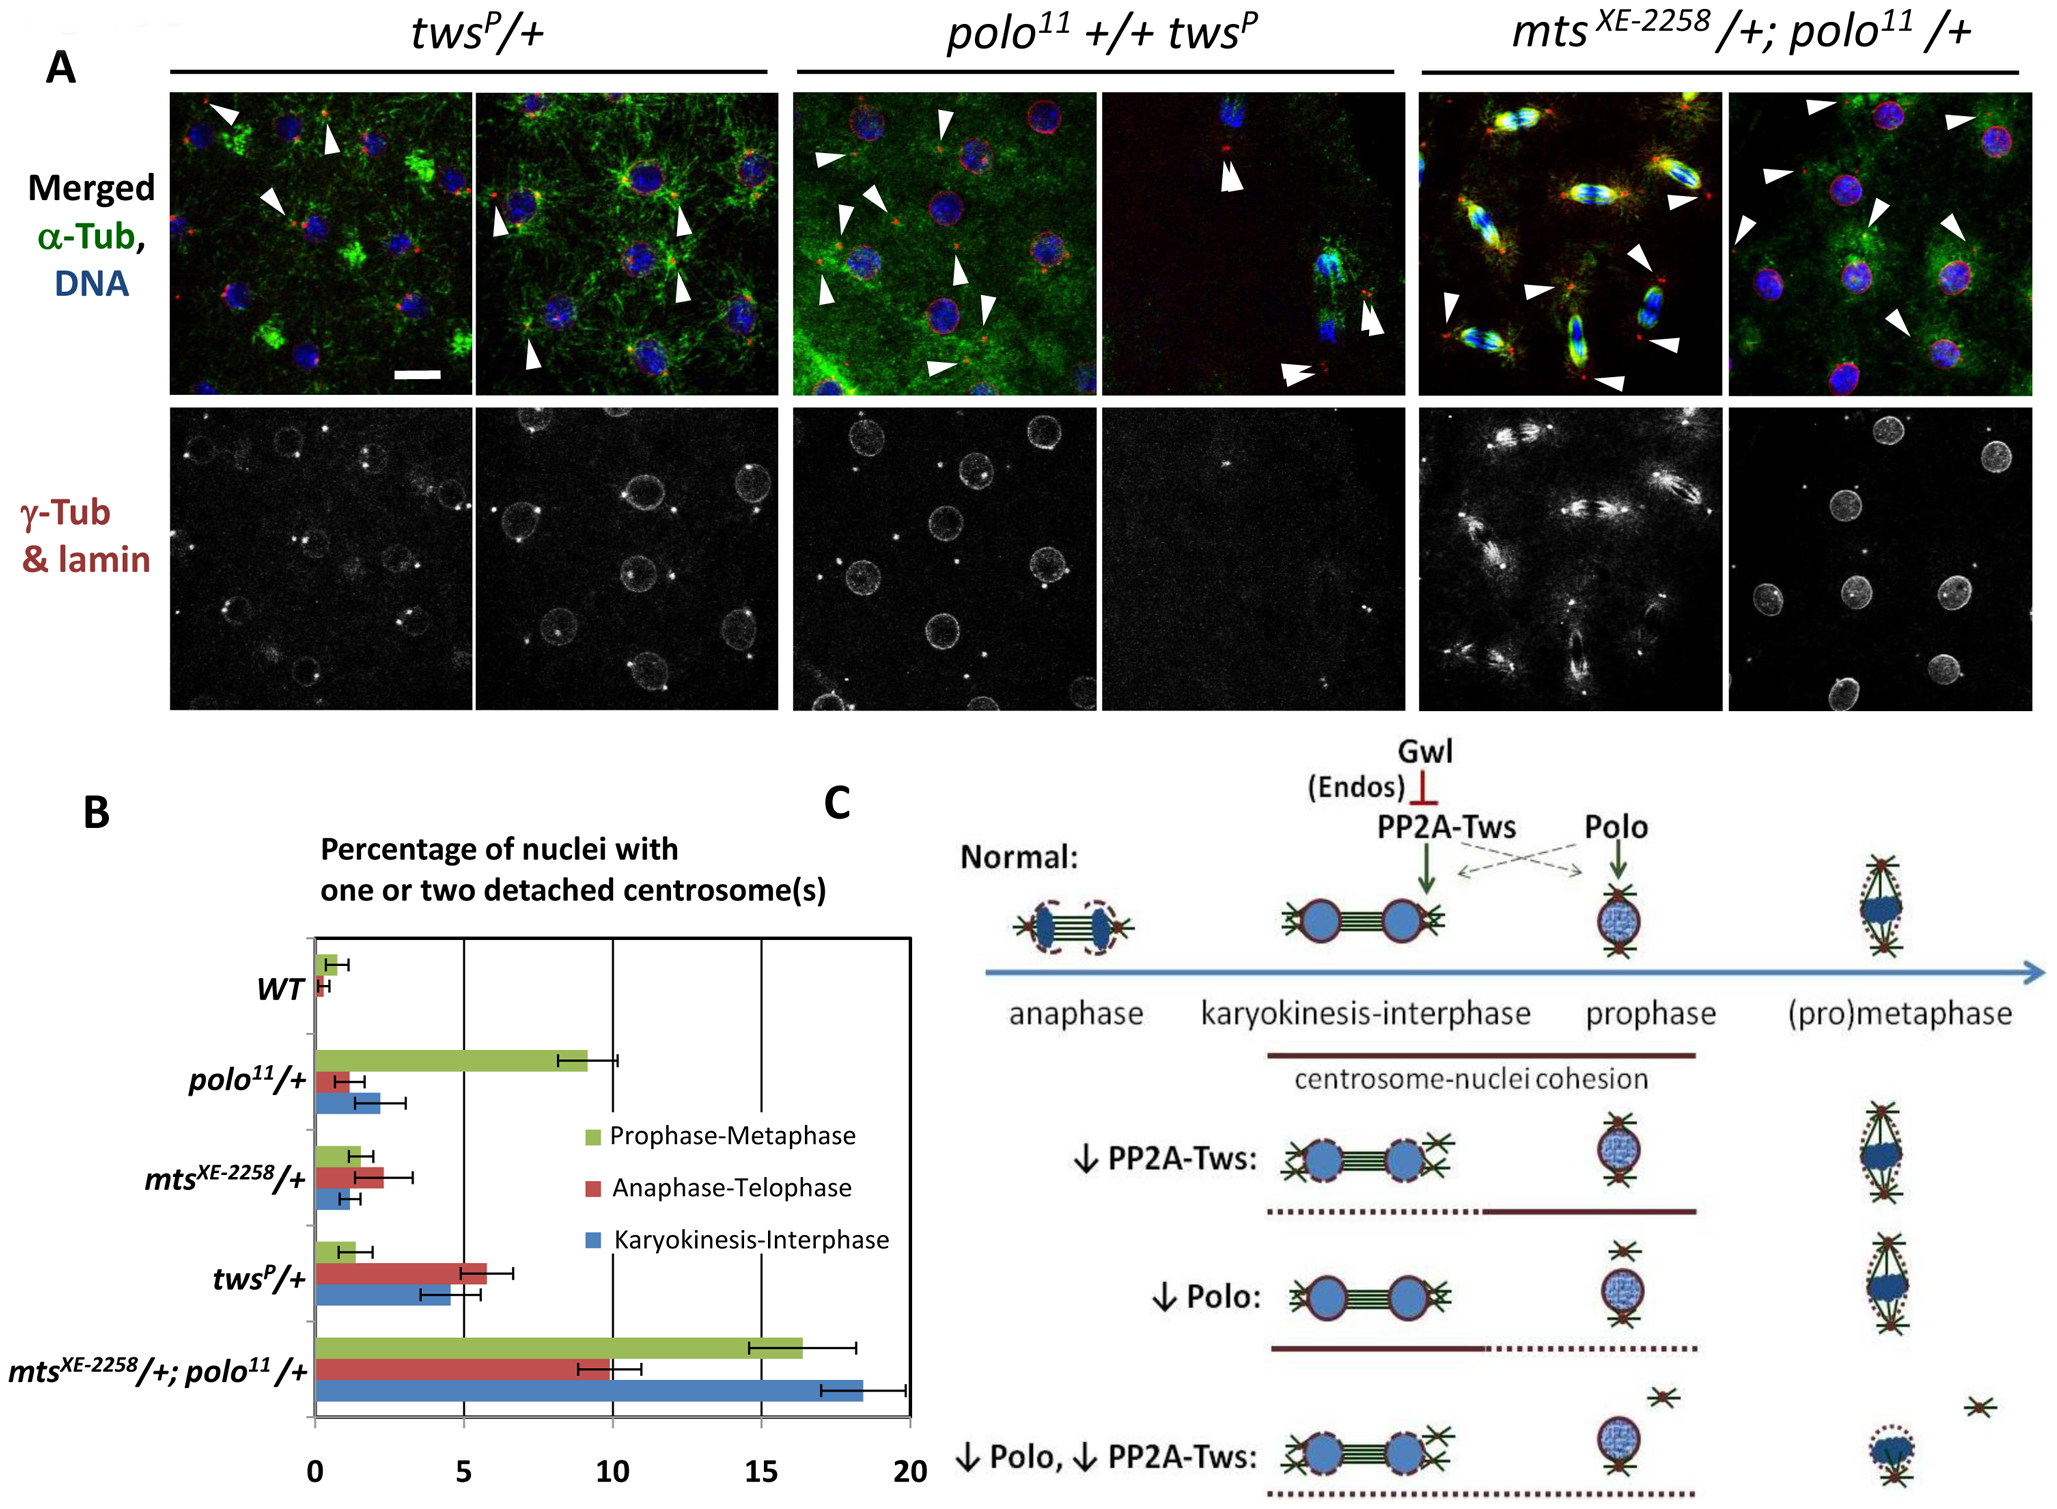 PP2A-Tws collaborates with Polo to promote cell cycle progression and centrosome cohesion to nuclei.